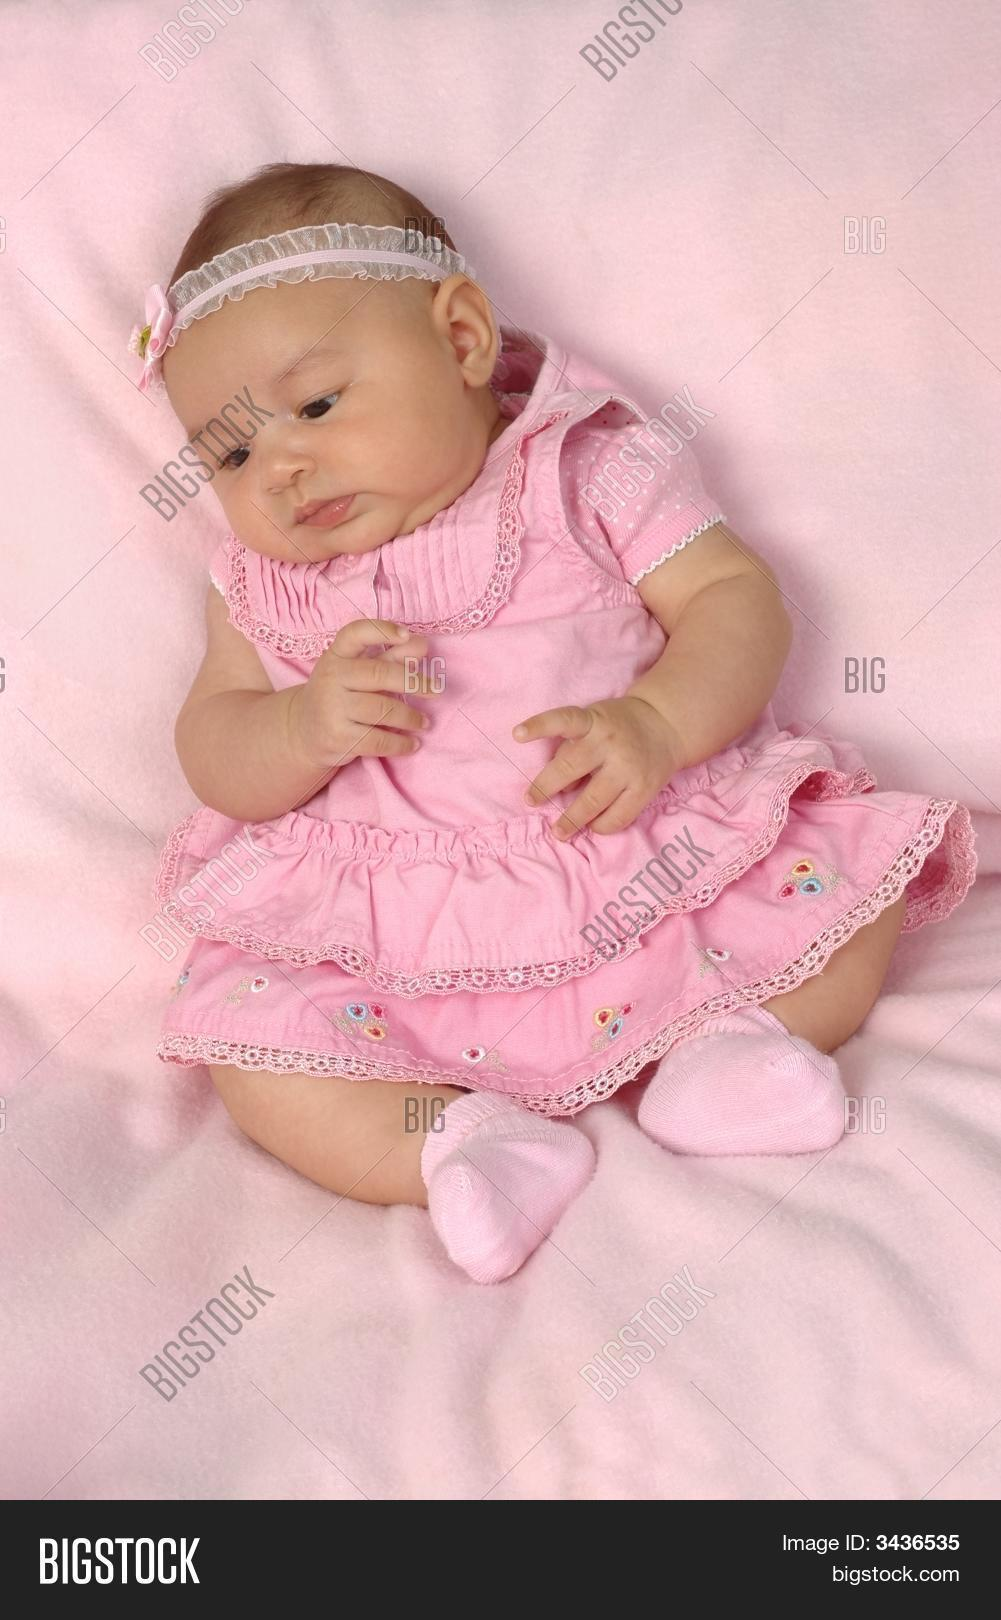 ef1232333 Cute 3-Month-Old Baby Image   Photo (Free Trial)